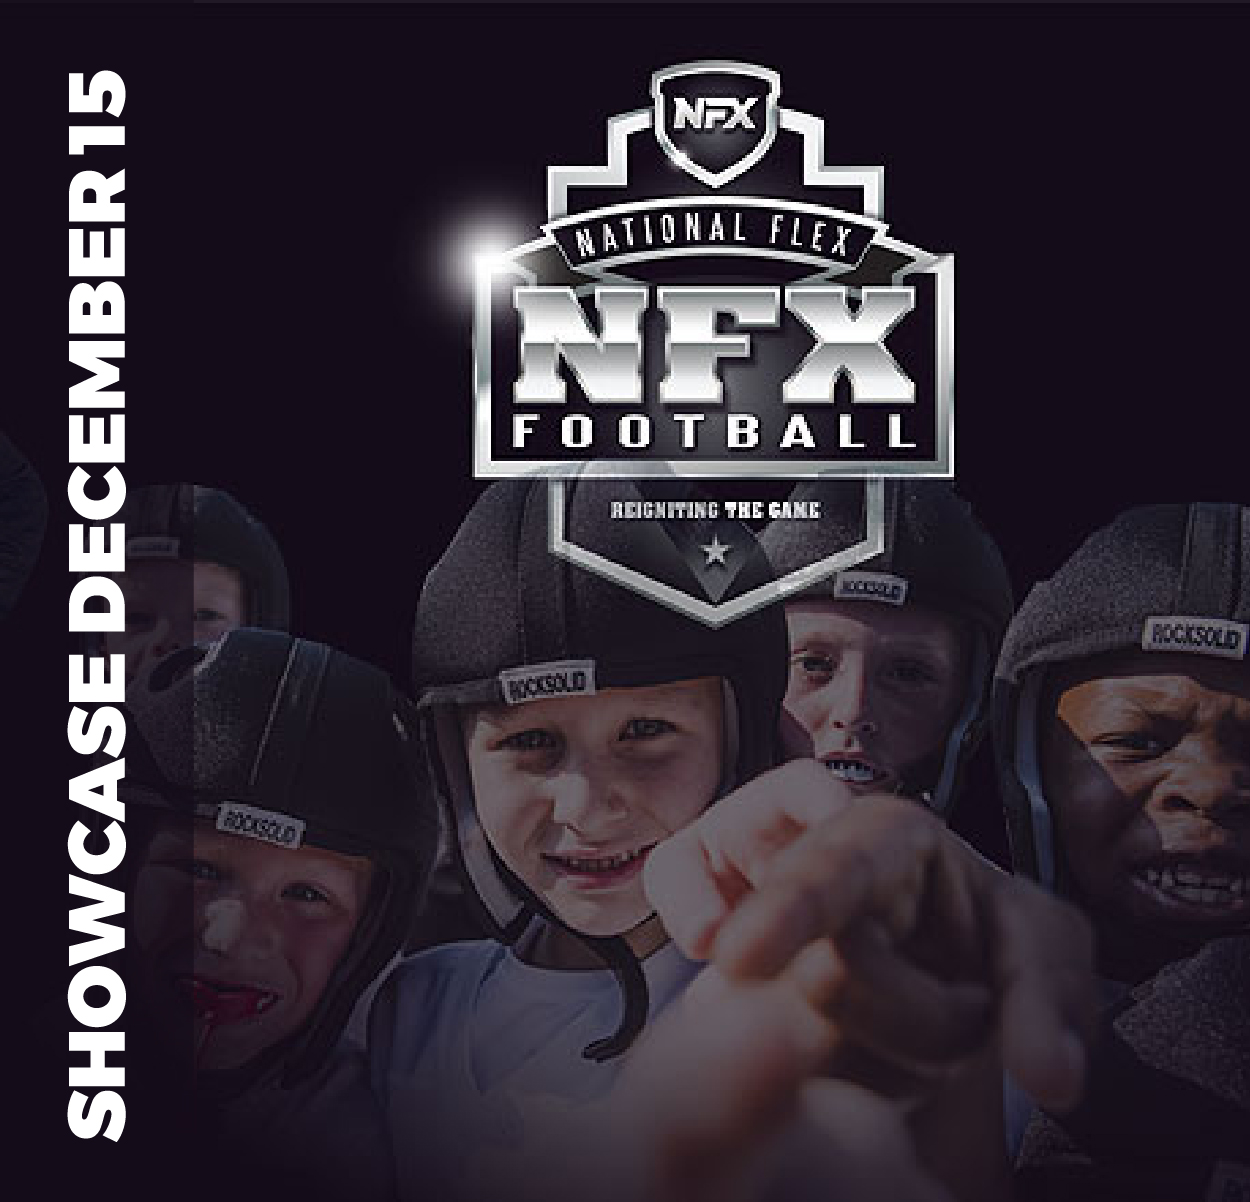 Flex Football Showcase - What:Date TBD: JanuaryShowcase includes clinic with former NFL players followed by games where players can put new skills into practice!$35/ Player for Clinic & GamesClinic: 10:00AM - 11:00AMGames: 11:00 AM- 1:00PMLearn more about Flex FootballContact: Bob at (214) 738-5183 or info@forosportsclub.com